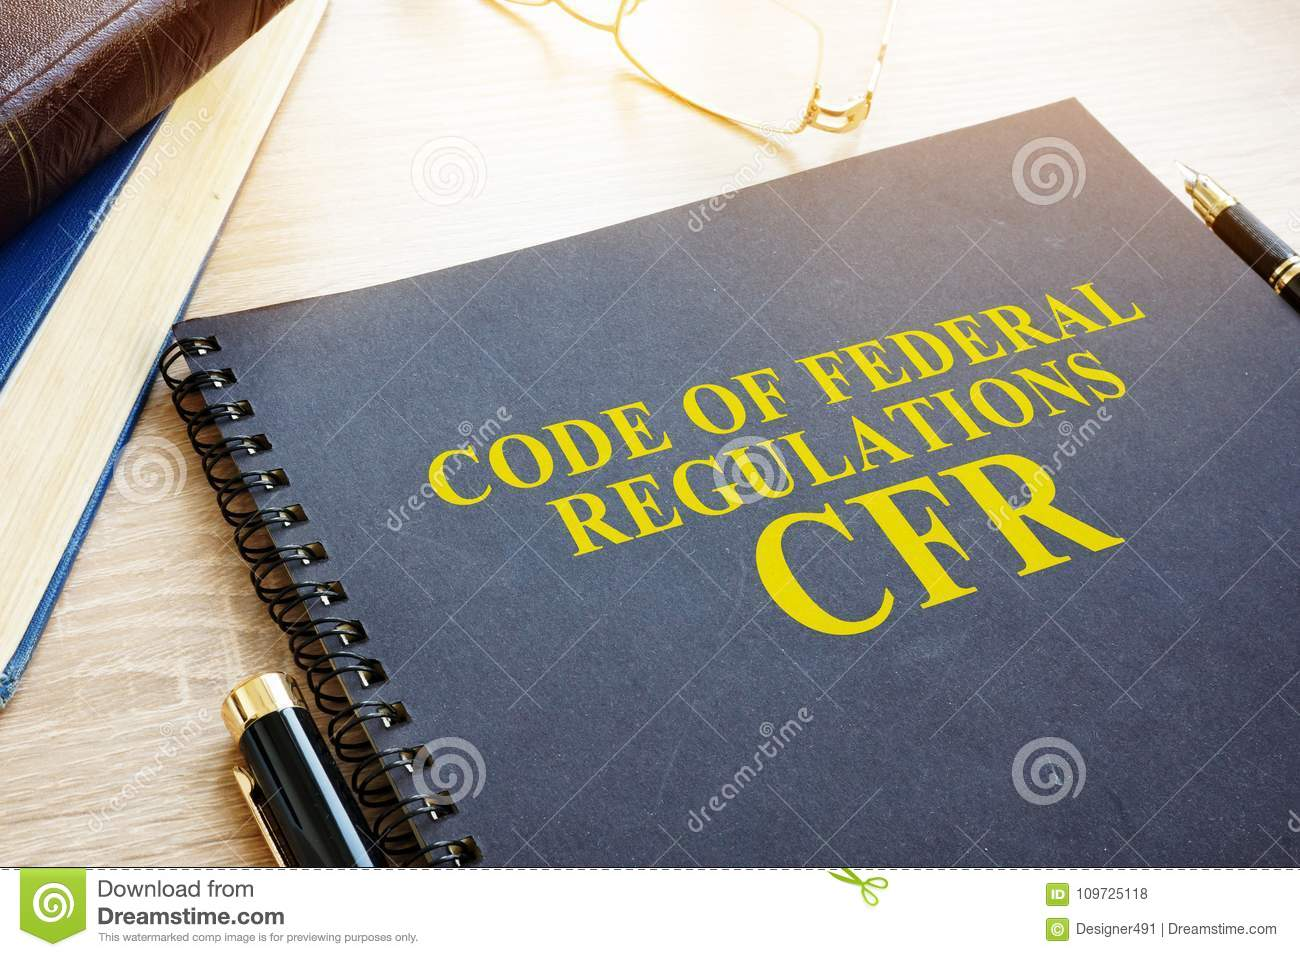 1,989 Cfr Photos - Free & Royalty-Free Stock Photos from Dreamstime